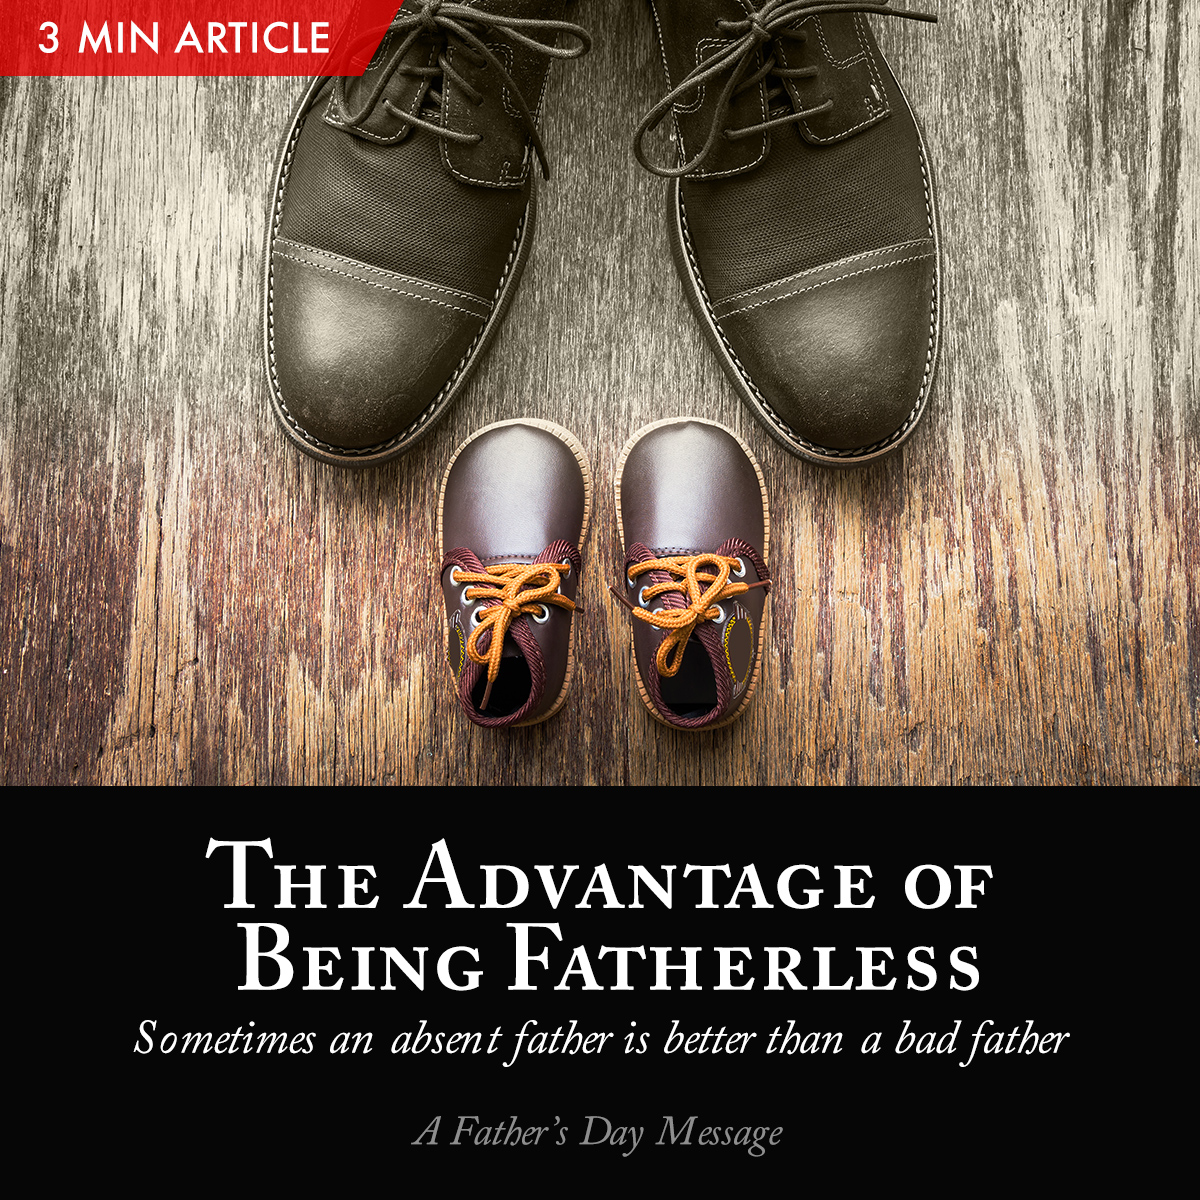 The Advantage of Being Fatherless